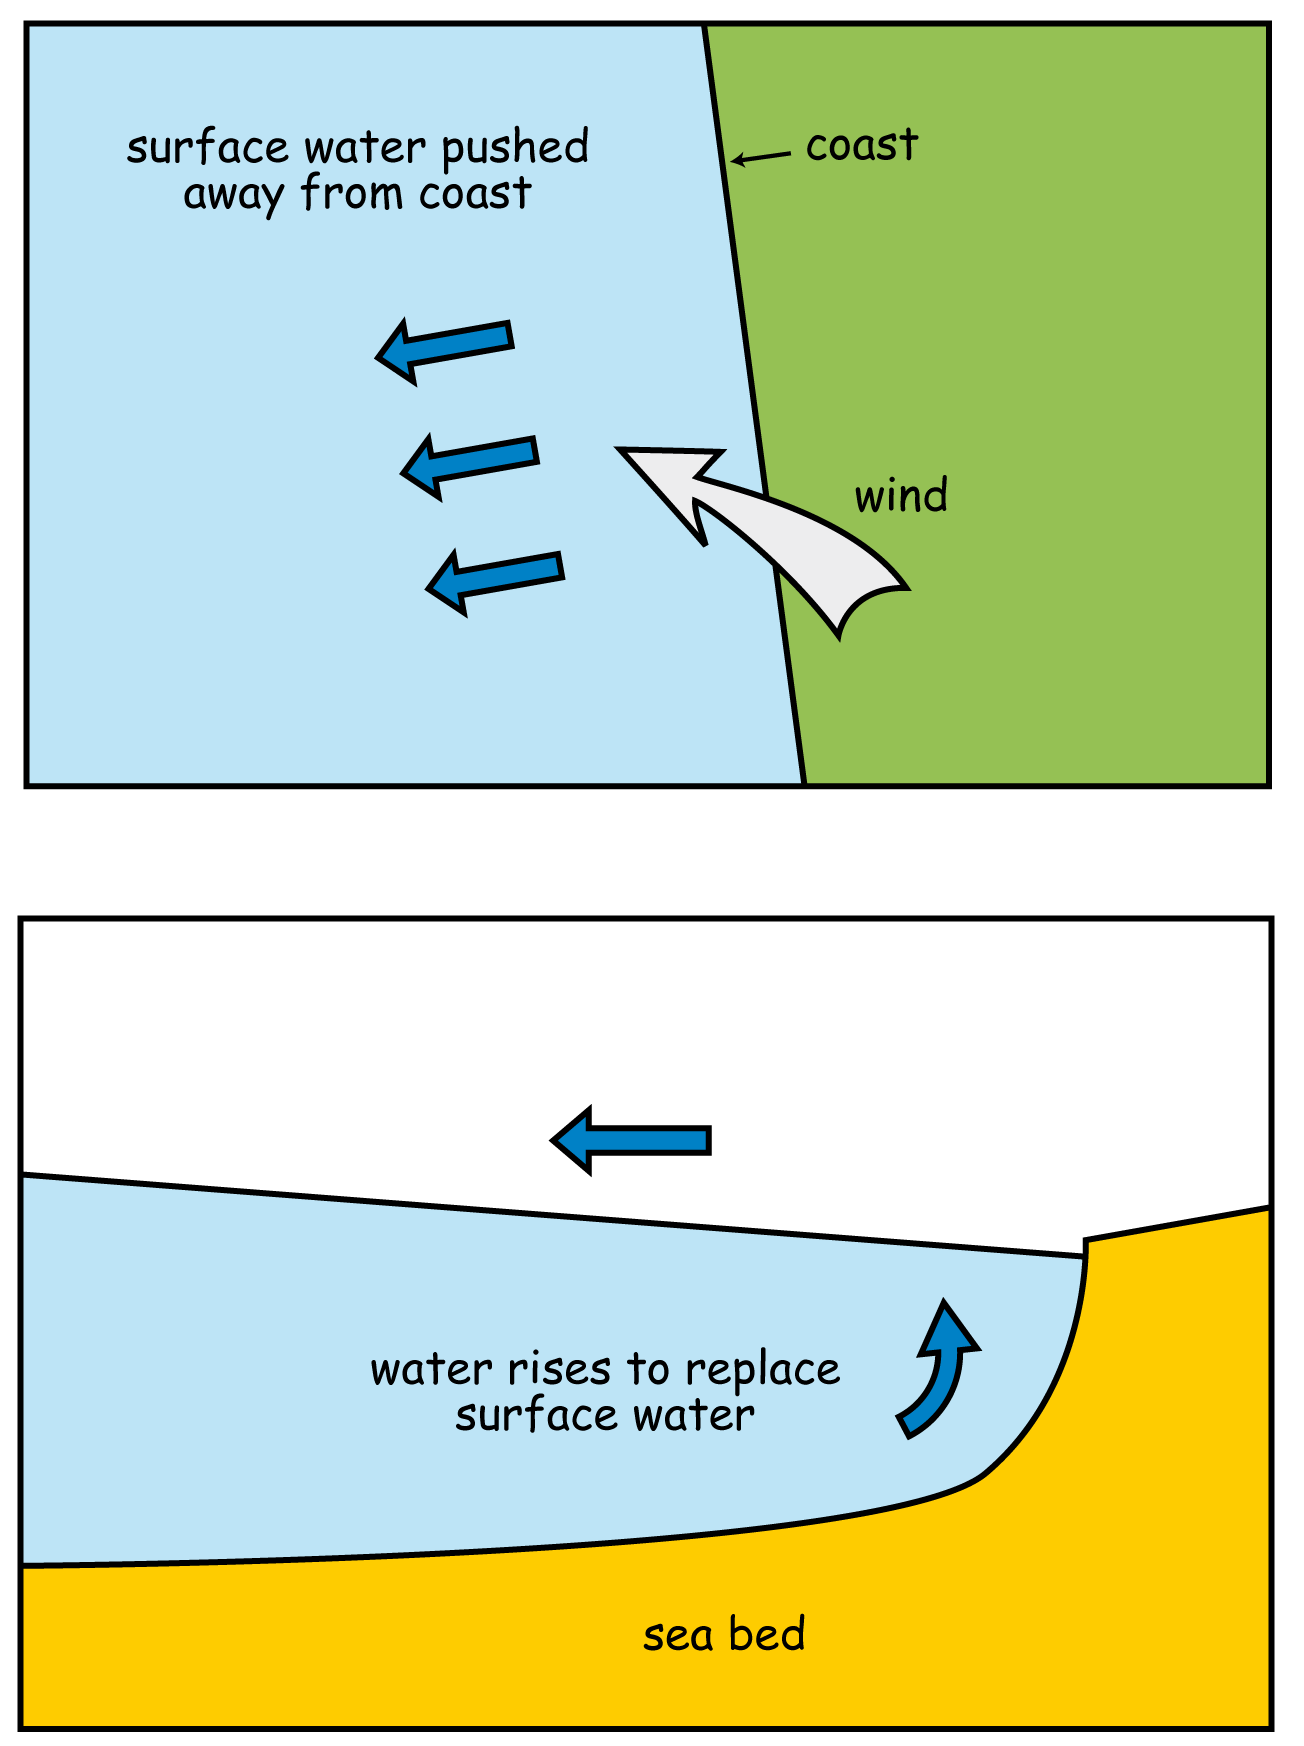 Coastal upwelling is the continual rising up of cold water from underneath to replace the warm surface water while the surface water is being pushed away from the coast by the wind.